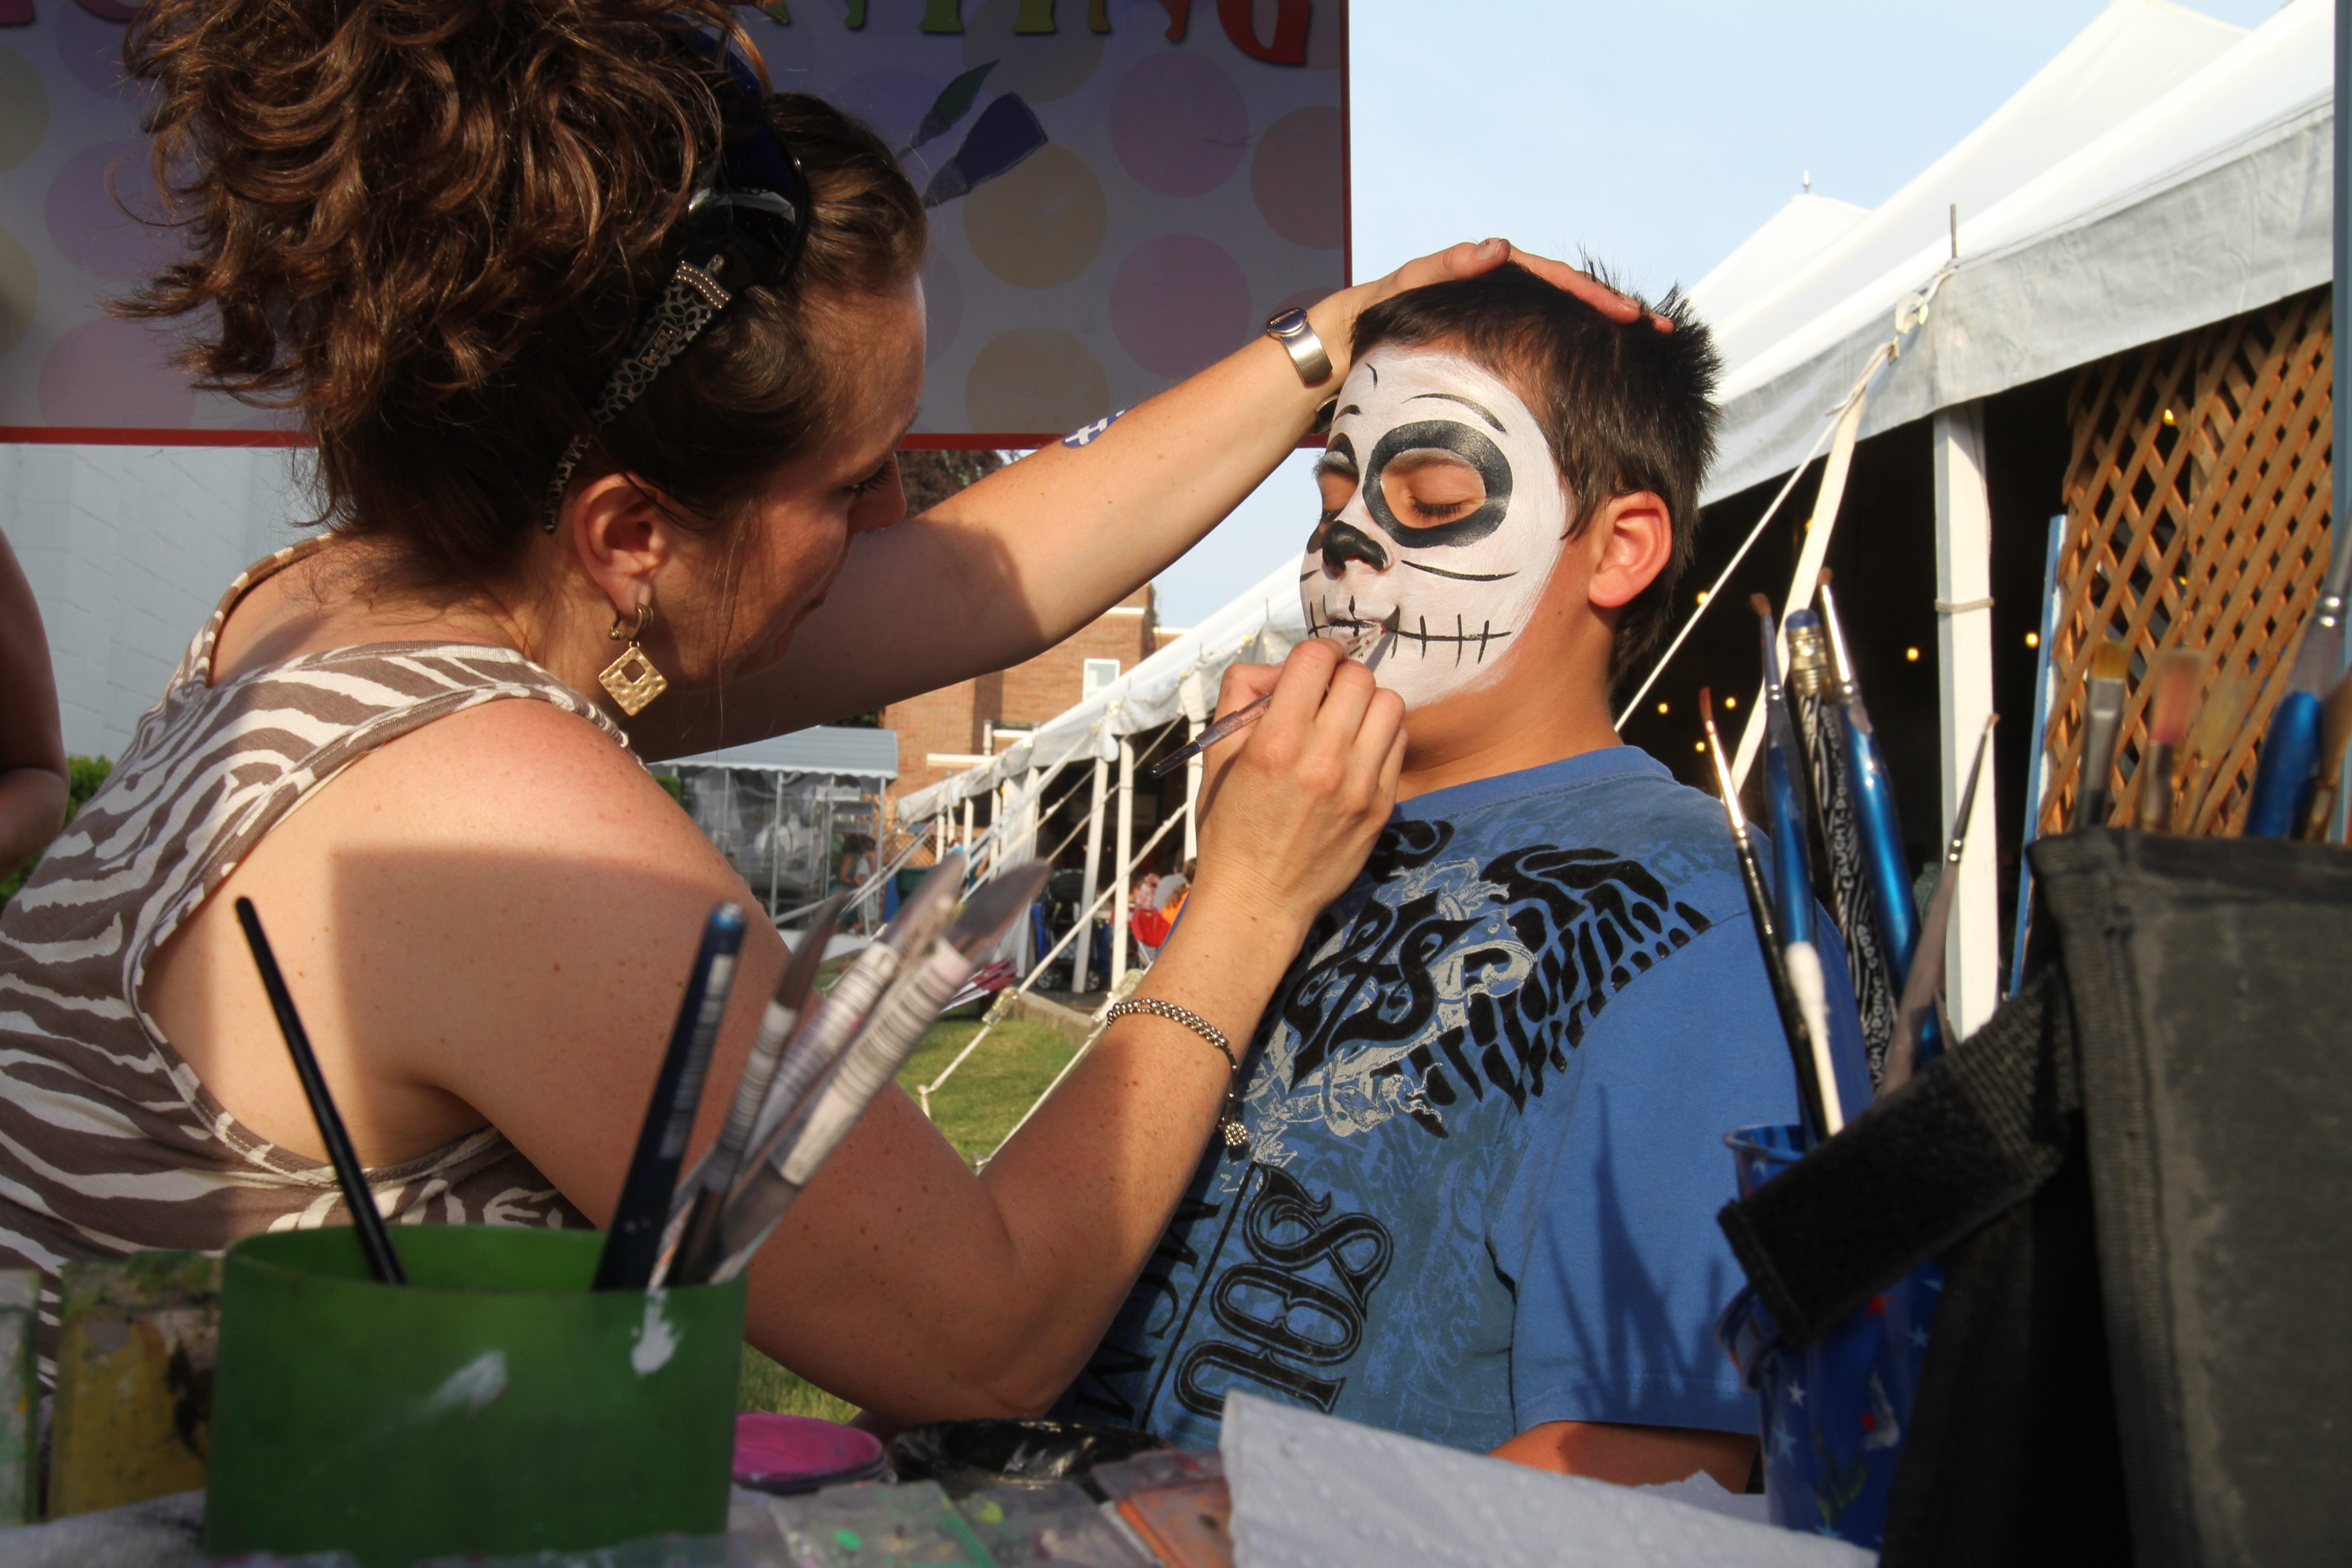 Nicholas Massaro, 11, of Amherst, gets his face painted by Lyn Marton on May 31, the first night of the Greek Fest, at Hellenic Orthodox Church of the Annunciation in Buffalo.